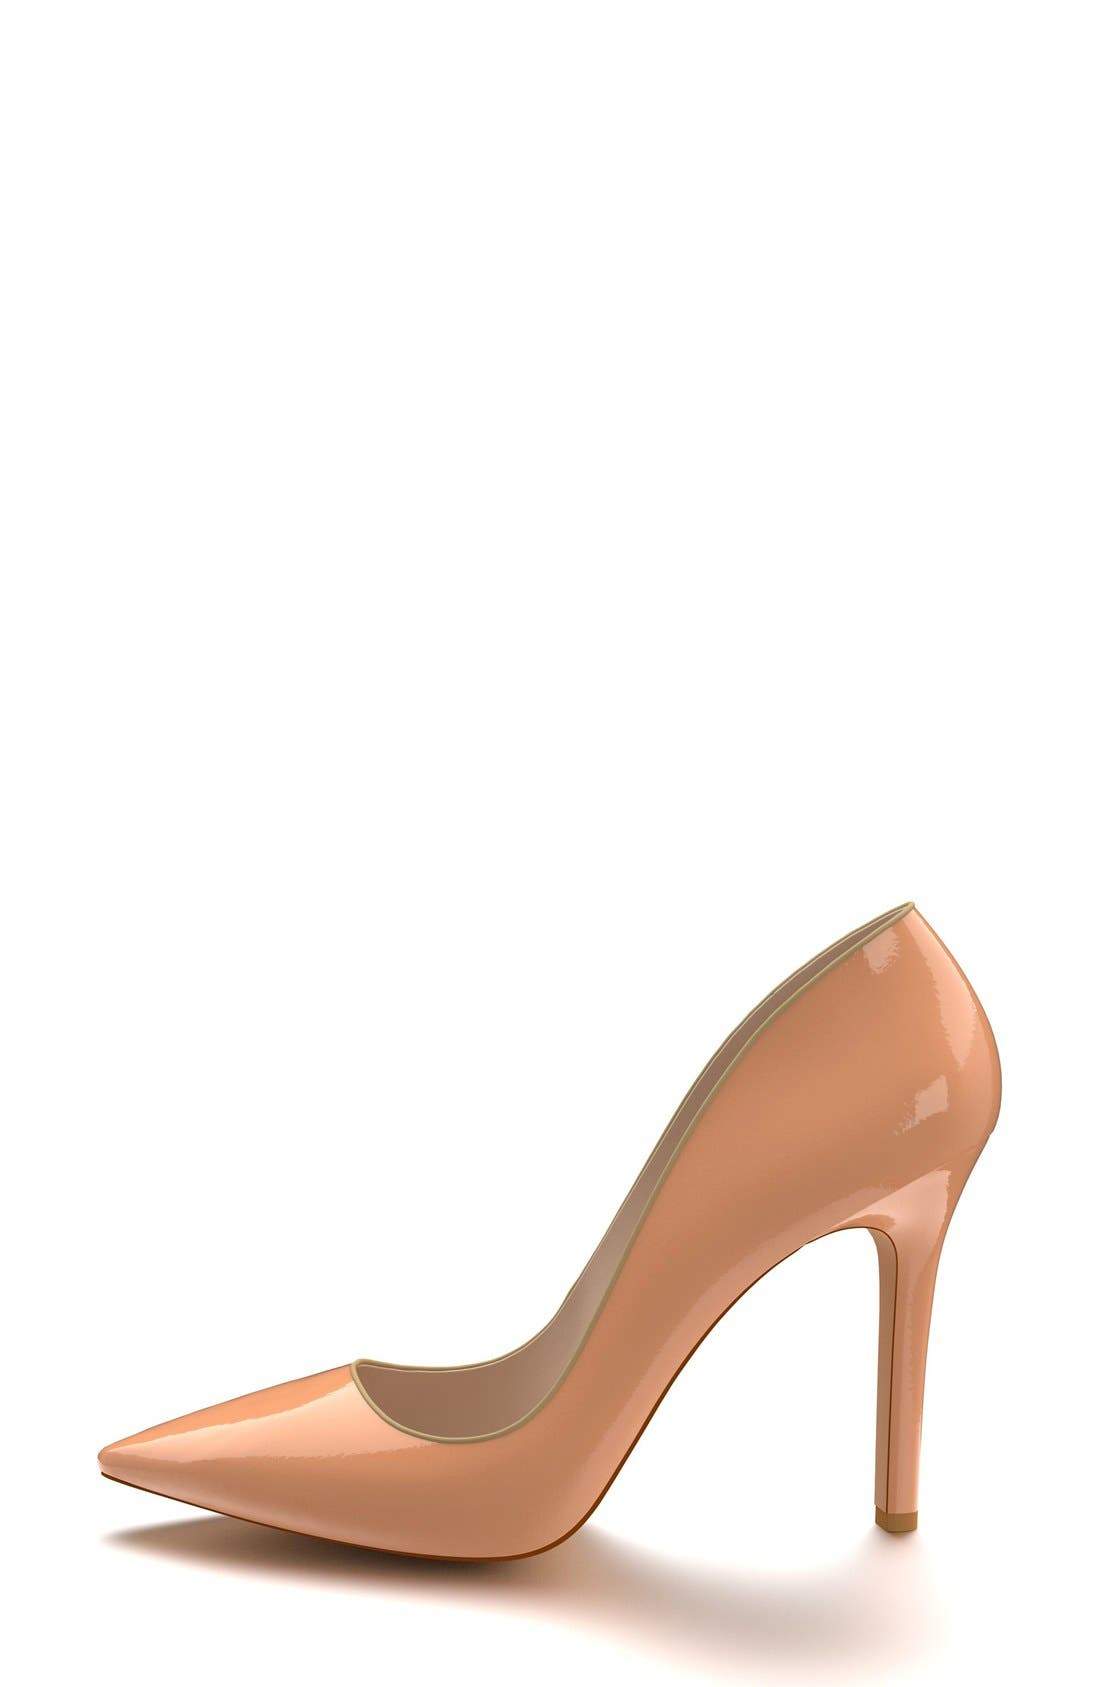 Pointy Toe Pump,                             Alternate thumbnail 4, color,                             Nude Patent